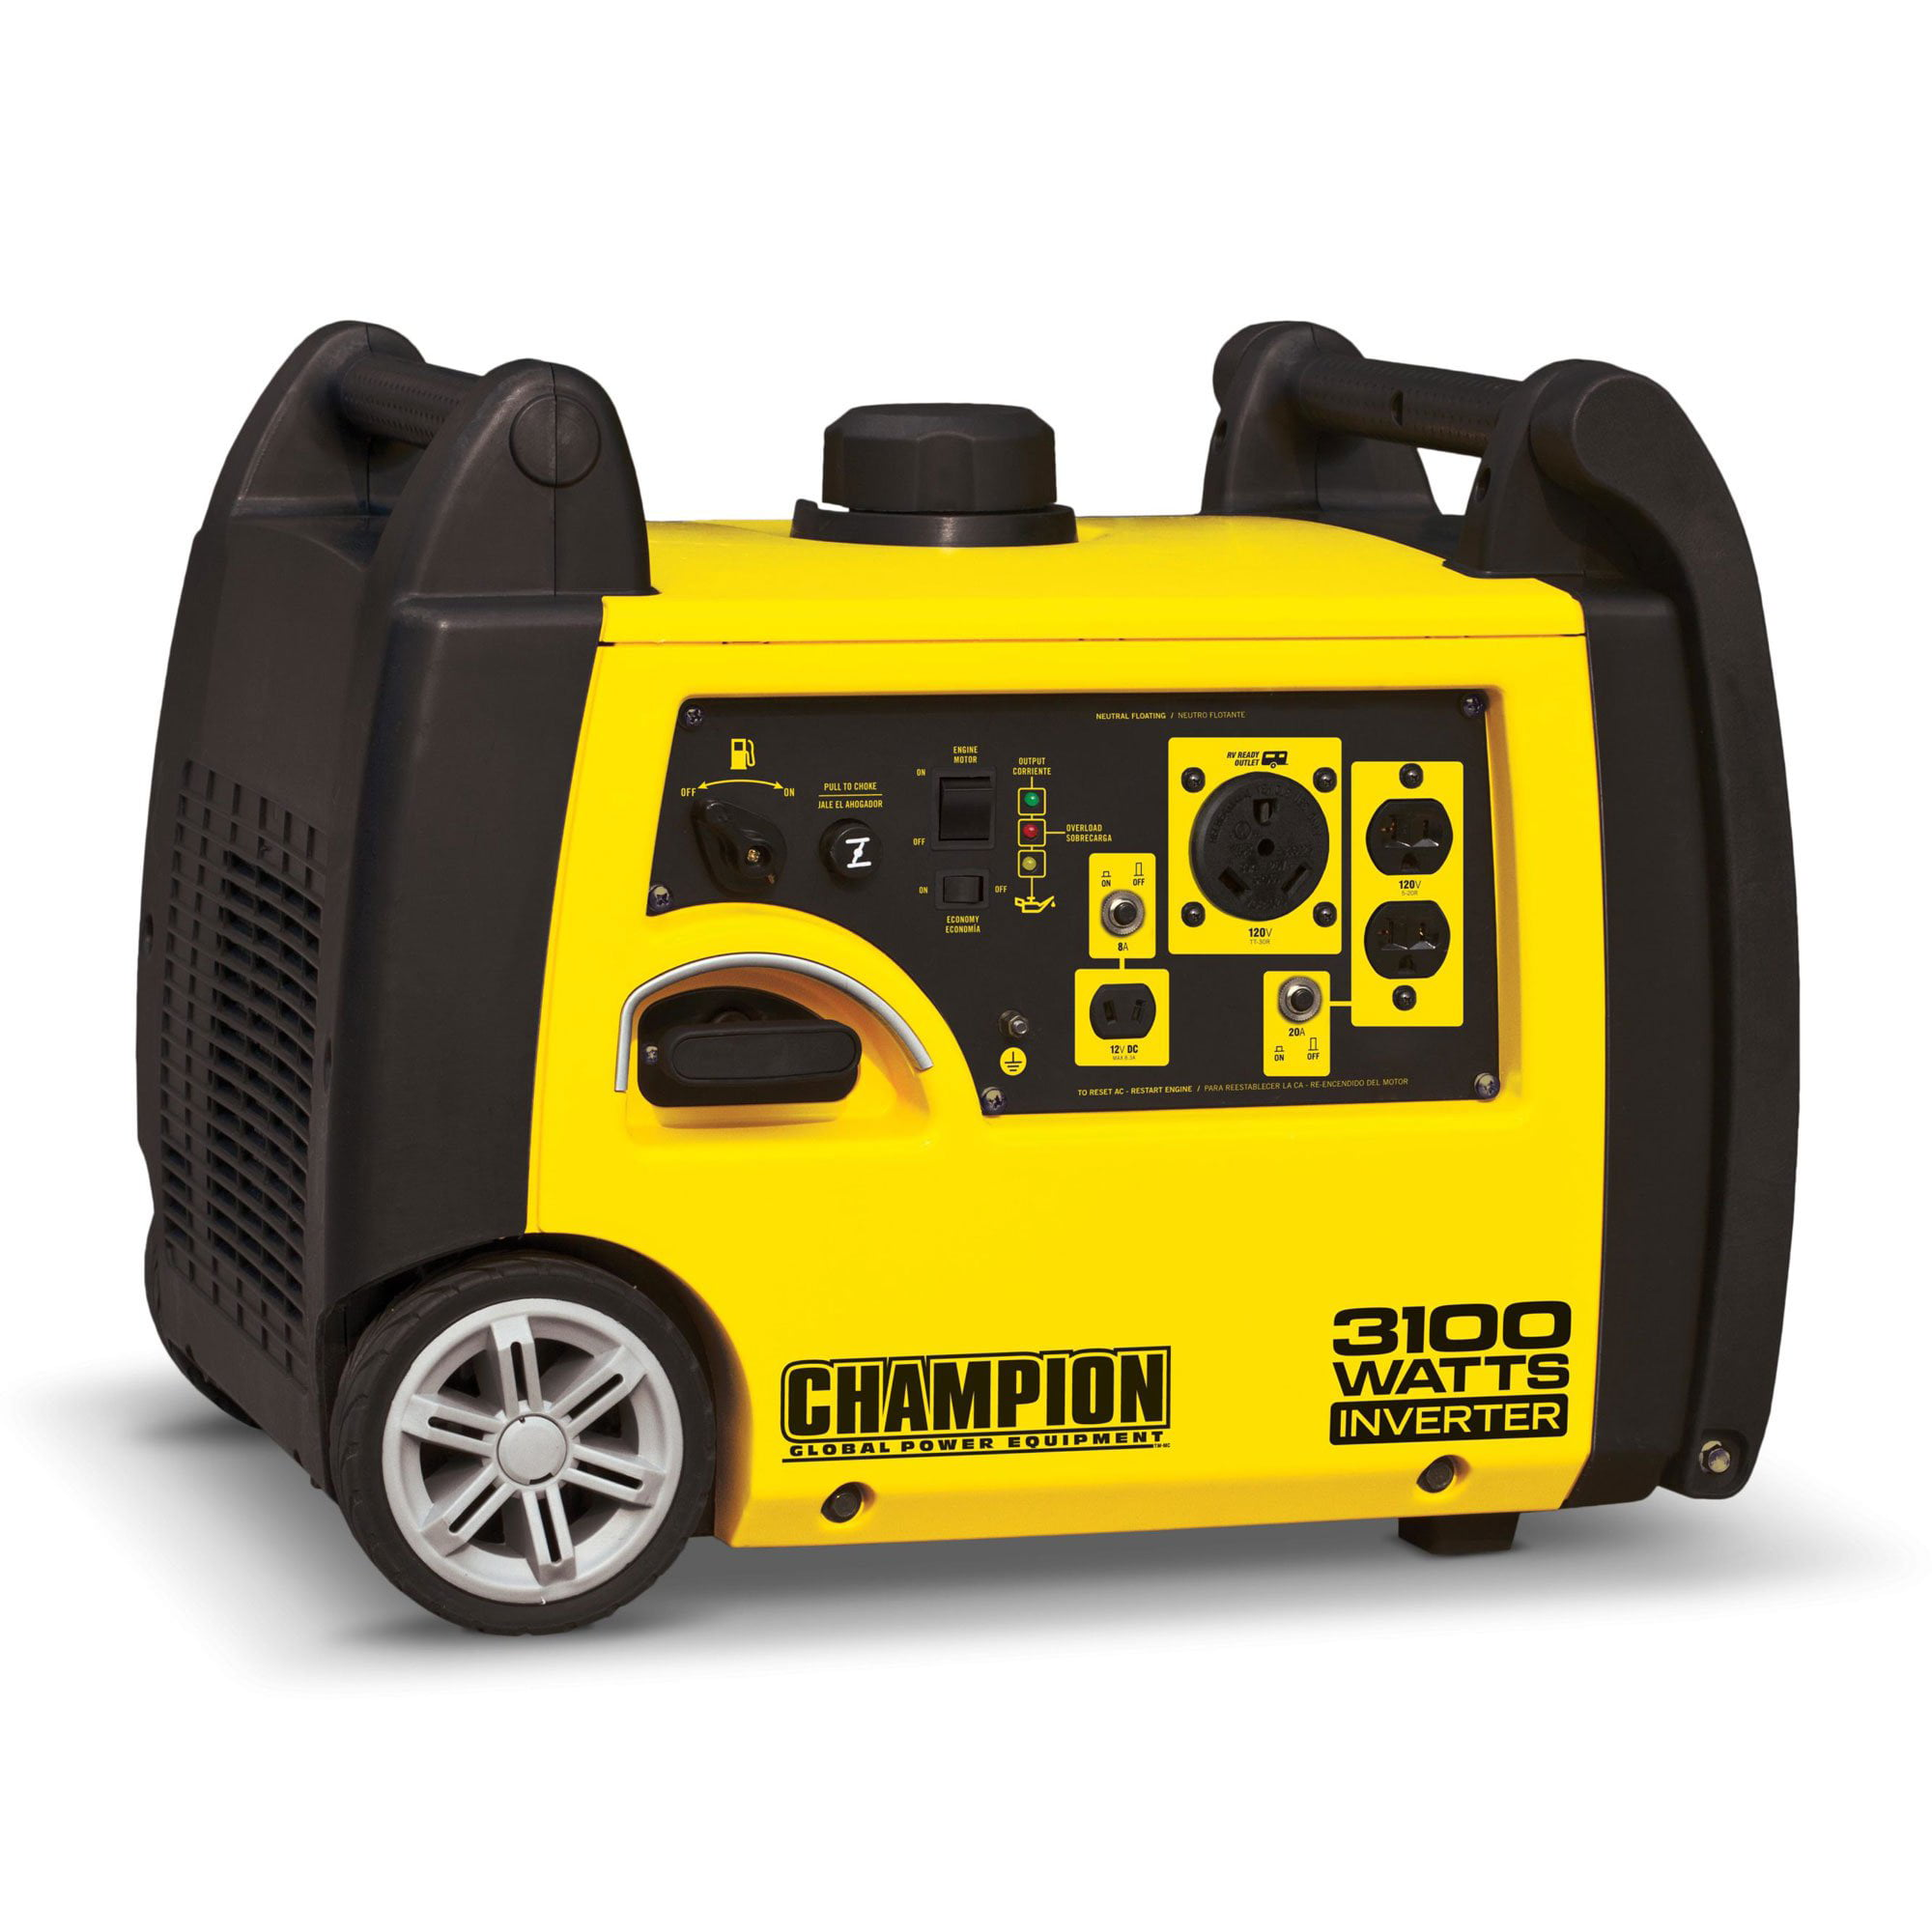 Champion 75531i 3100-Watt RV Ready Portable Inverter Generator by Champion Power Equipment